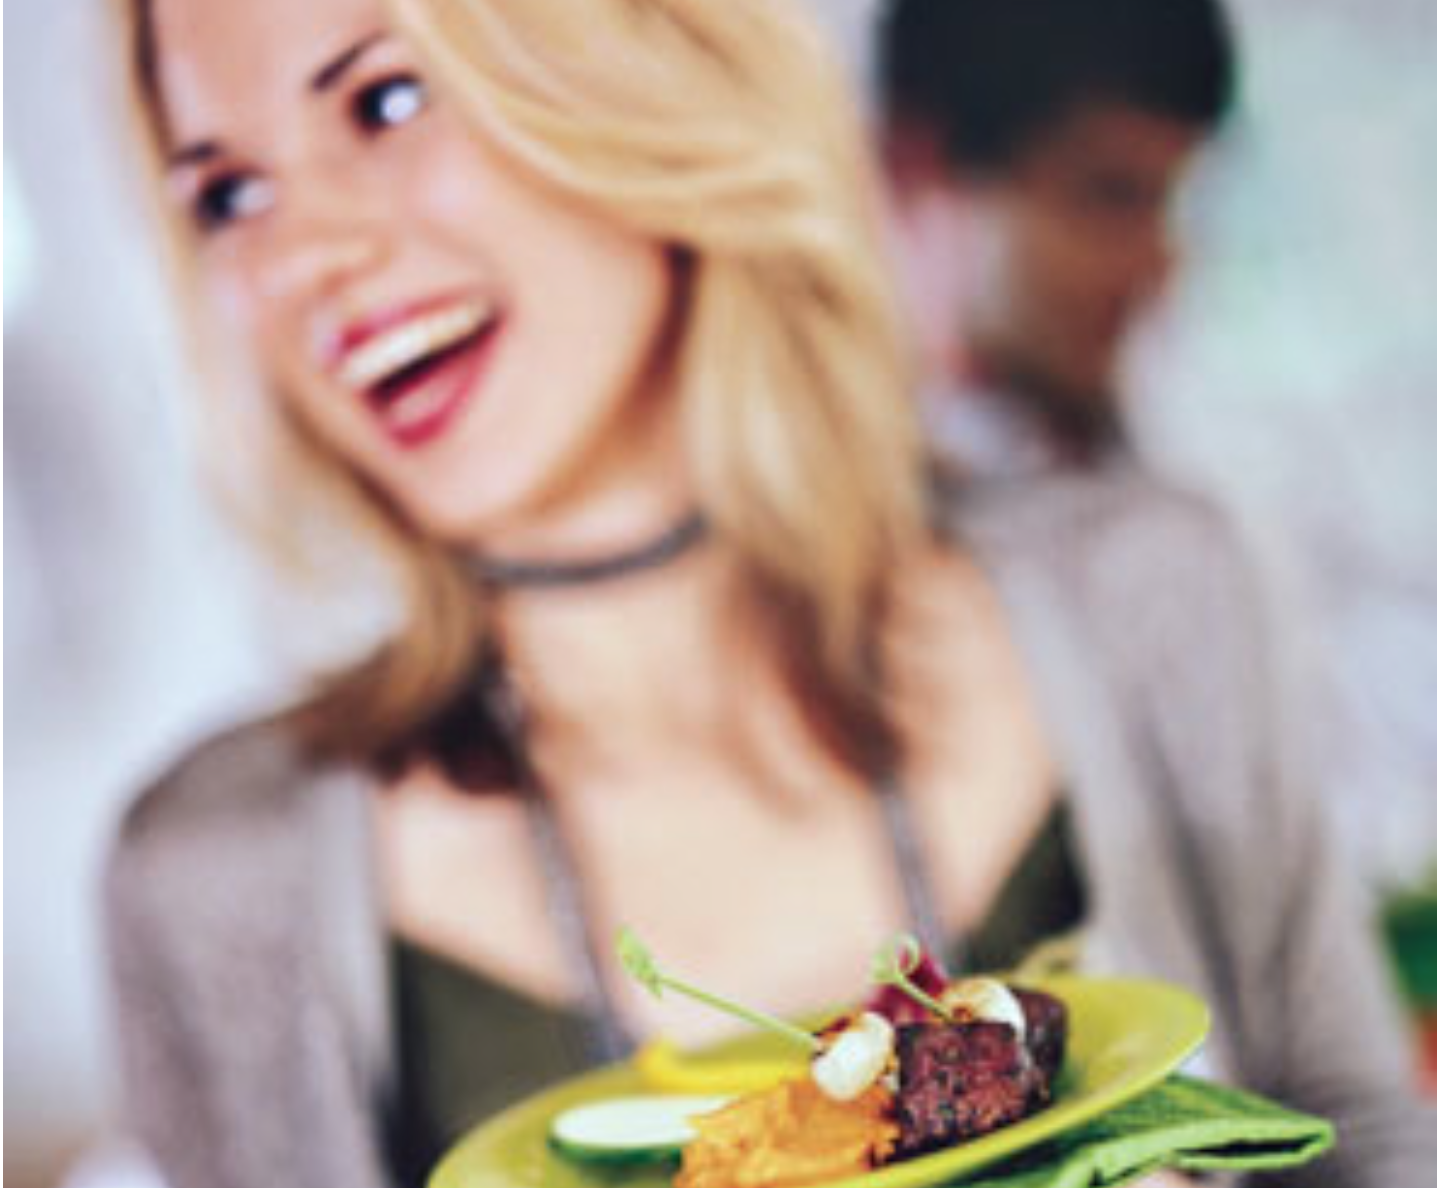 Four Tips For Holiday Party Food Anxiety Orlando Body Image Counselor